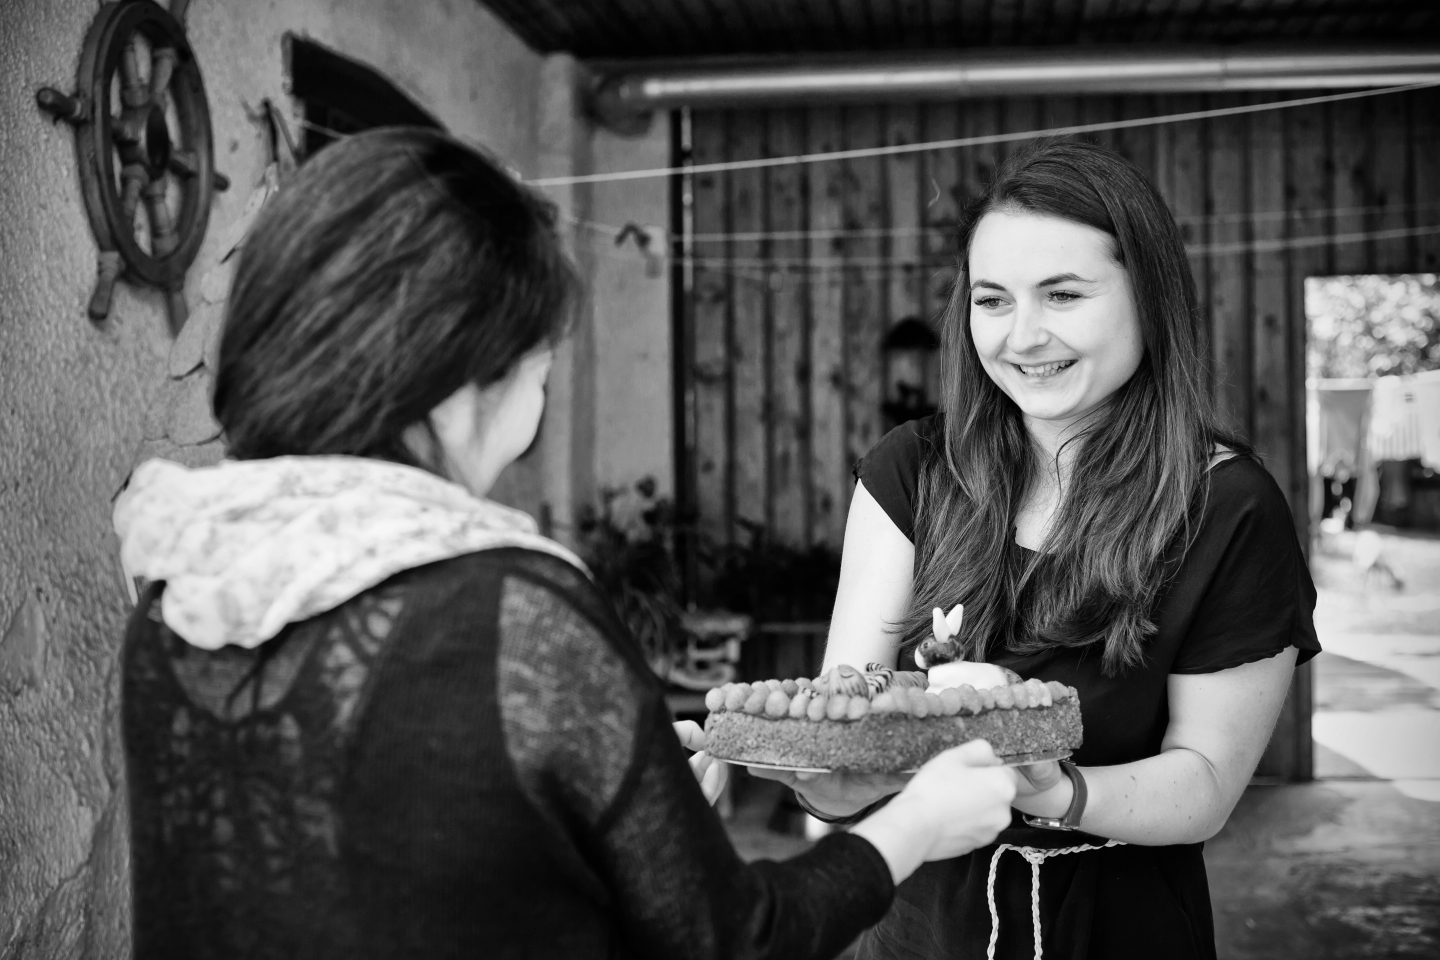 Kateřina is a passionate baker and makes cake to order.